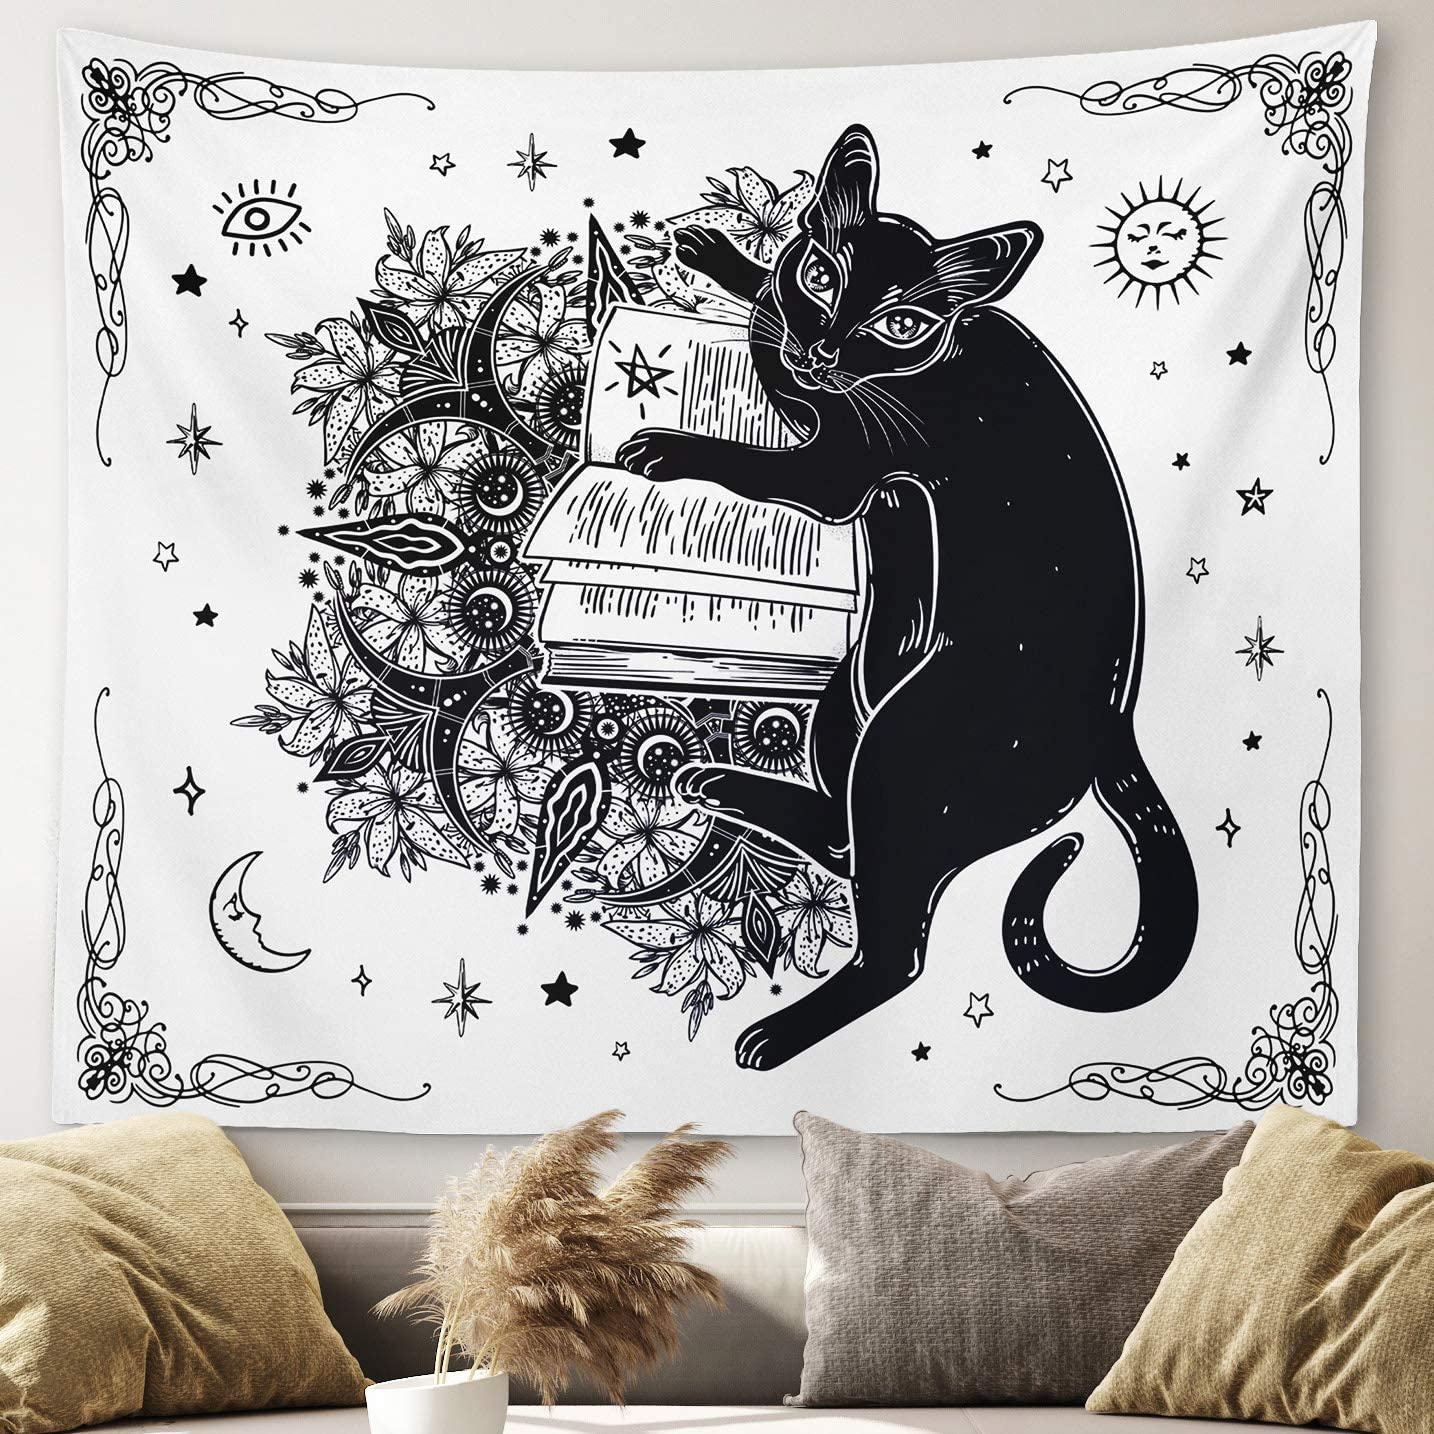 "Gothic Witchy Tapestry Witchcraft Magic Moon Skulls Spells Witch Kit Black and White Wall Hanging Goth Wall Decor Witch Tapestry (Cat, 51""x59"")"